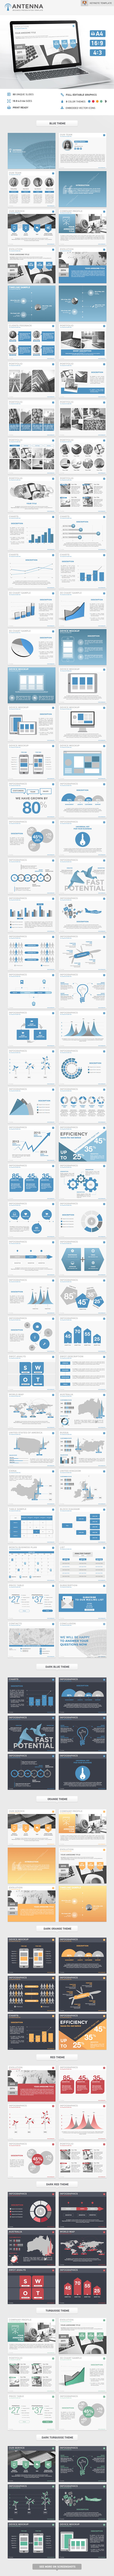 GraphicRiver Antenna Keynote Presentation Template 11337957